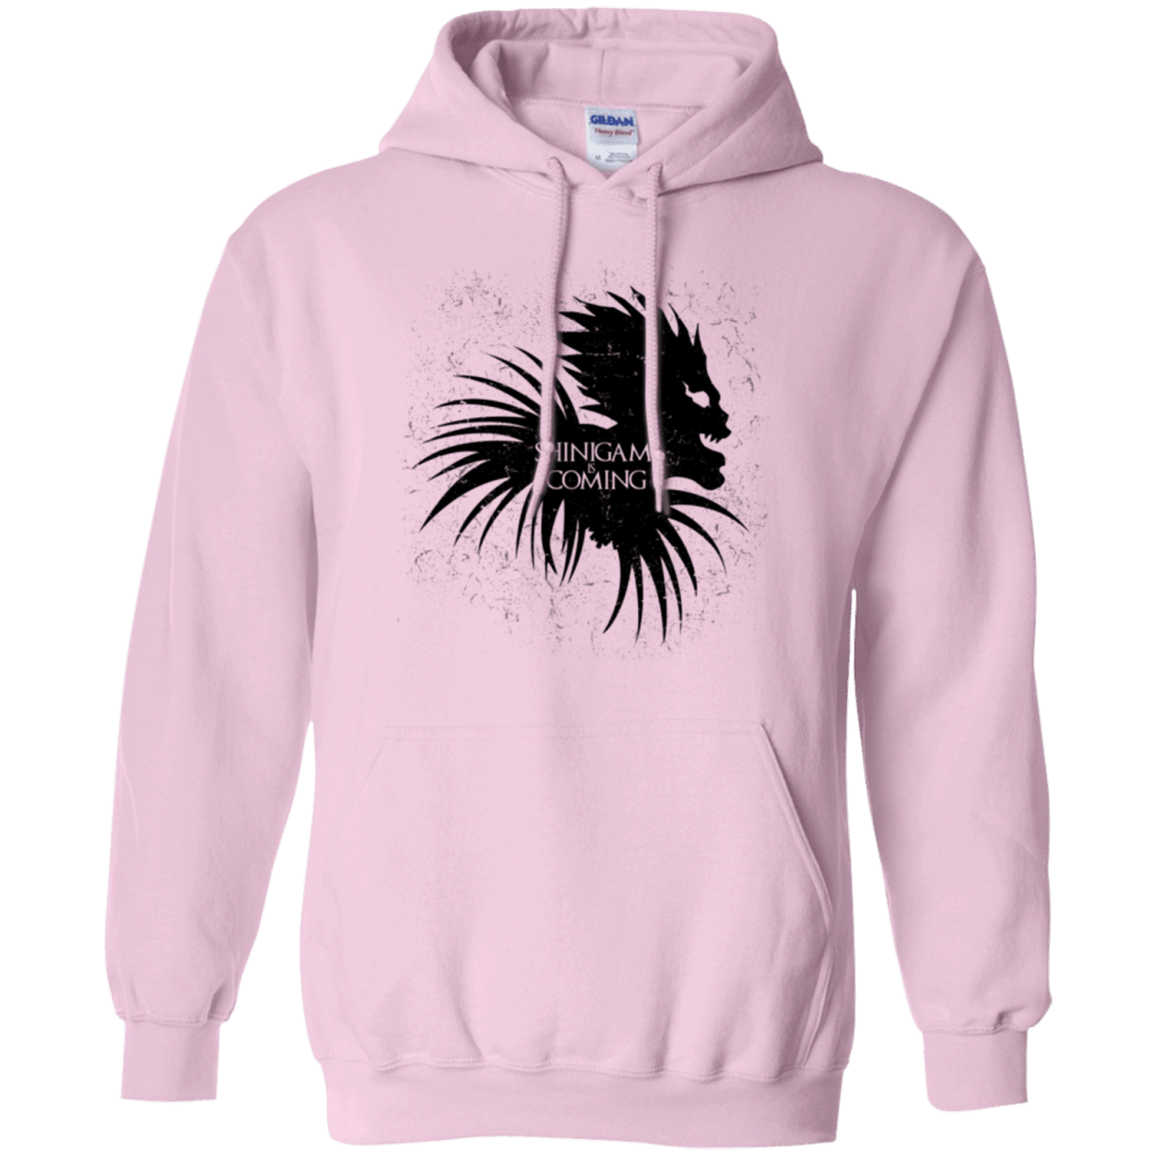 Shinigami Is Coming Pullover Hoodie